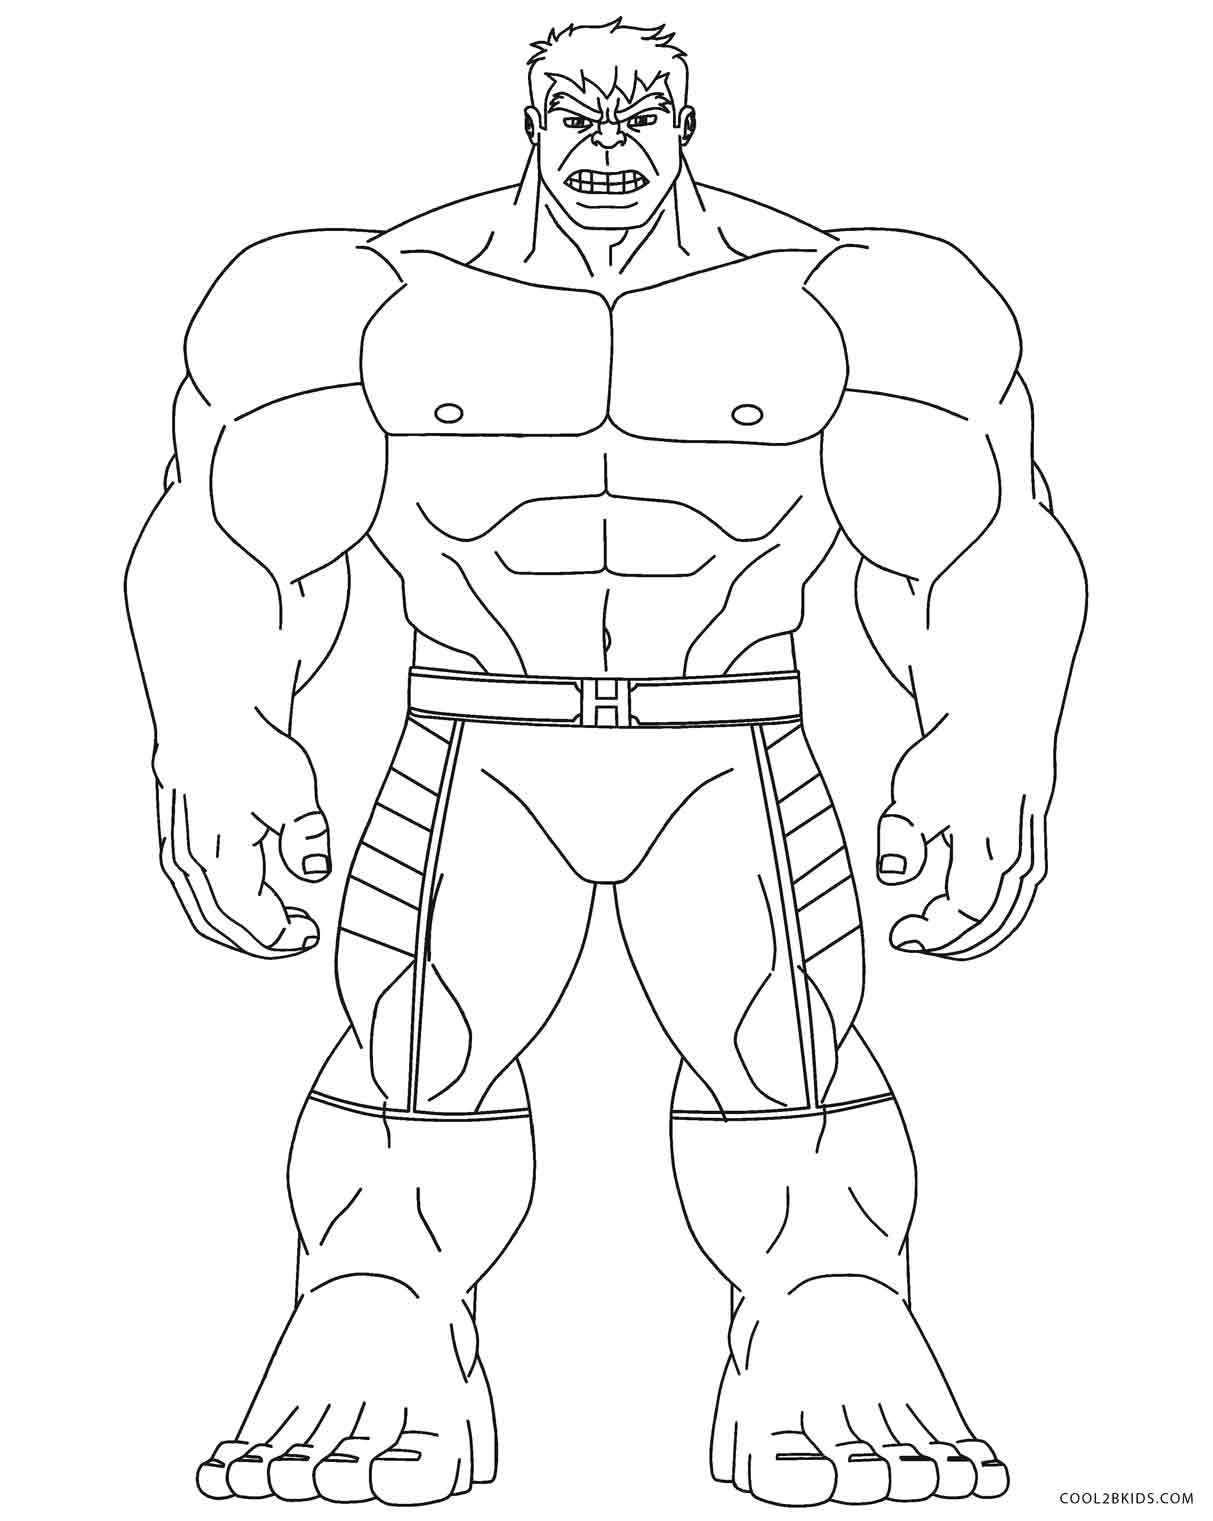 colouring hulk hulk coloring pages download and print hulk coloring pages hulk colouring